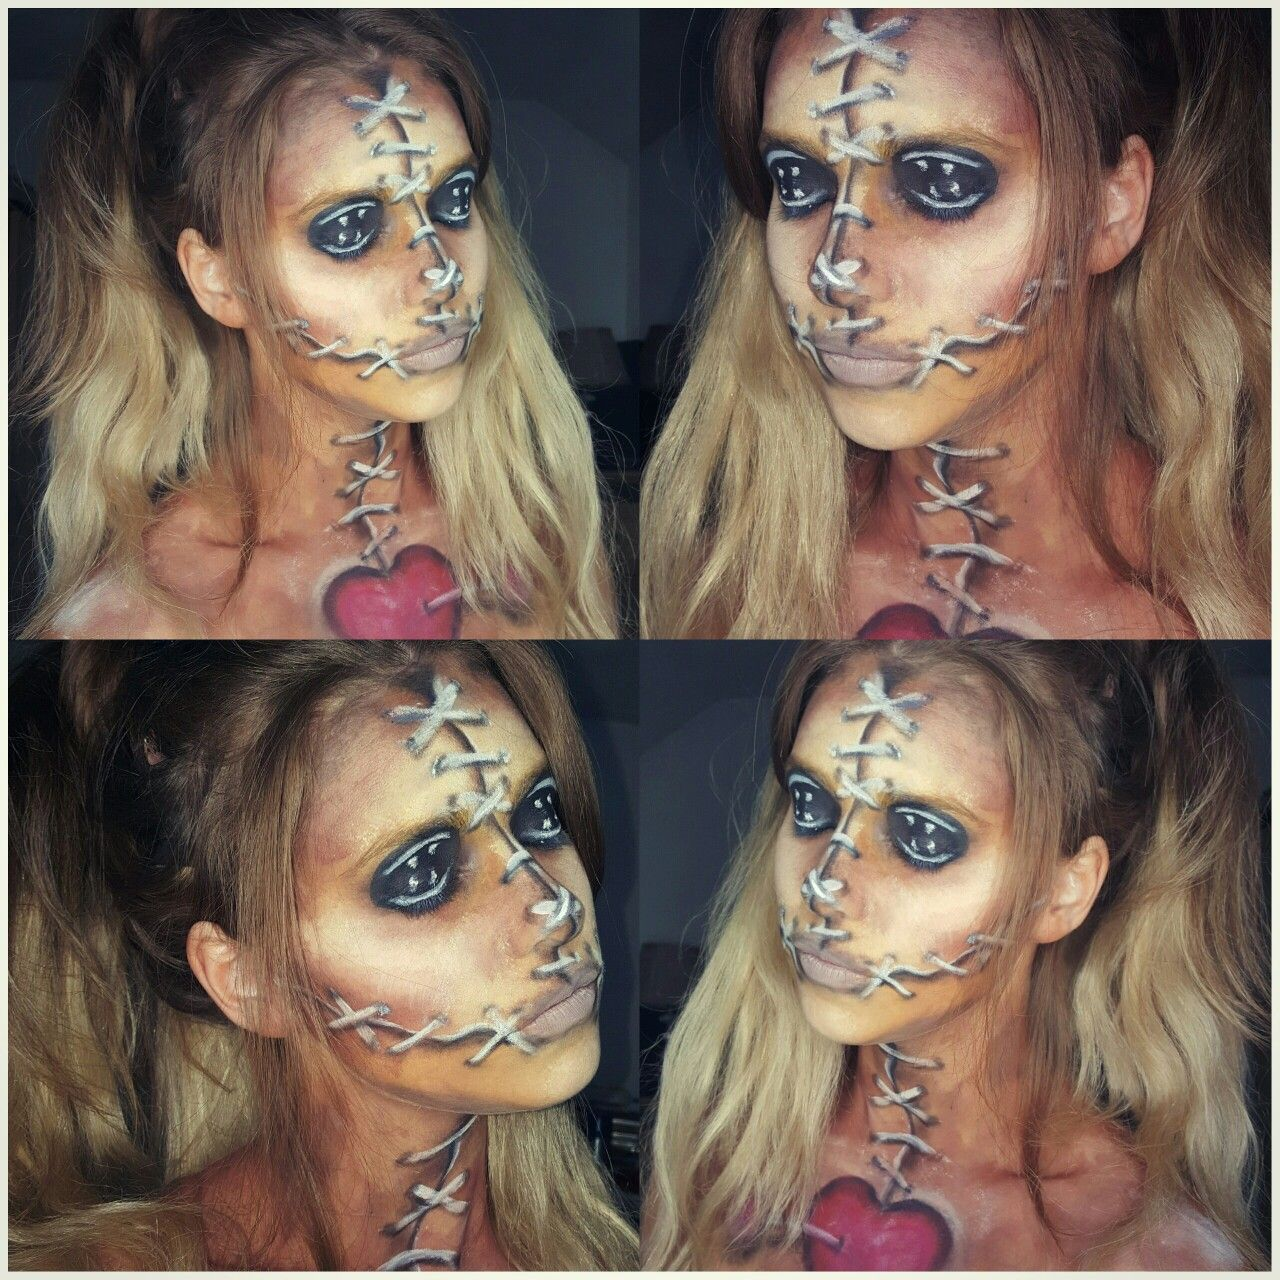 Voodoo doll makeup diamondfxfacepaint snazaroo makeupbycherece lots of inspiration diy makeup tutorials and all accessories you need to create your own diy voodoo doll costume for halloween baditri Images